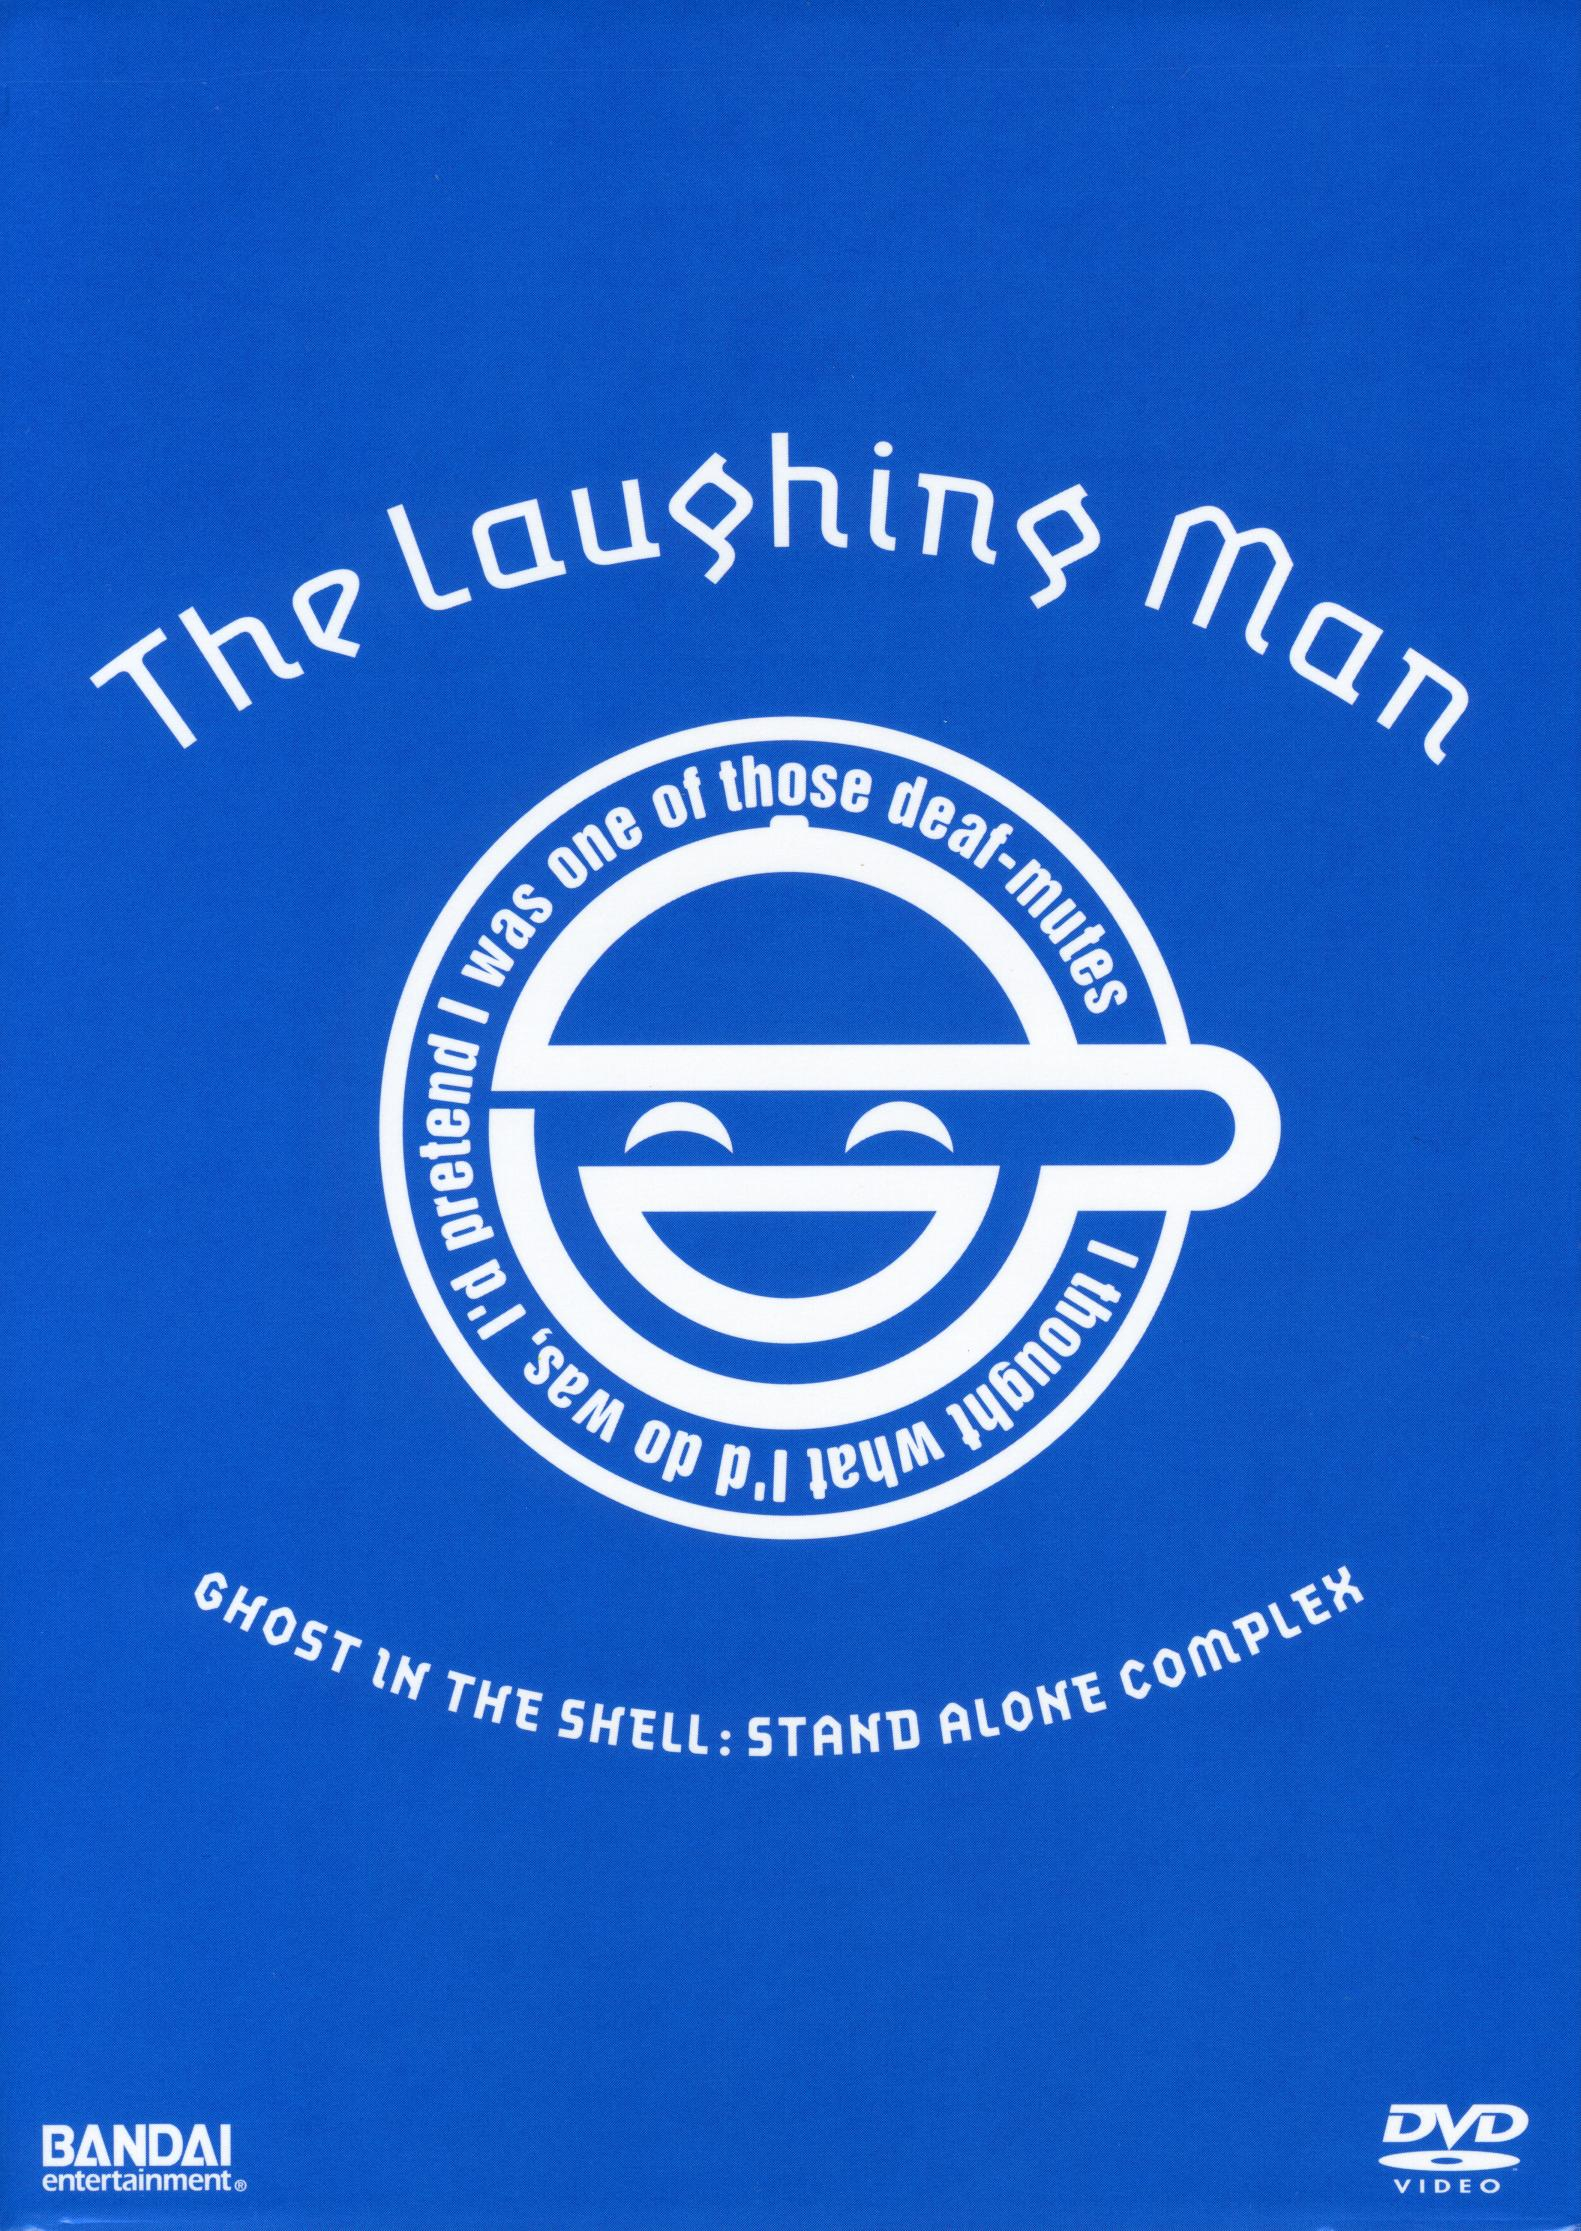 Ghost In The Shell Stand Alone Complex Laughing Man